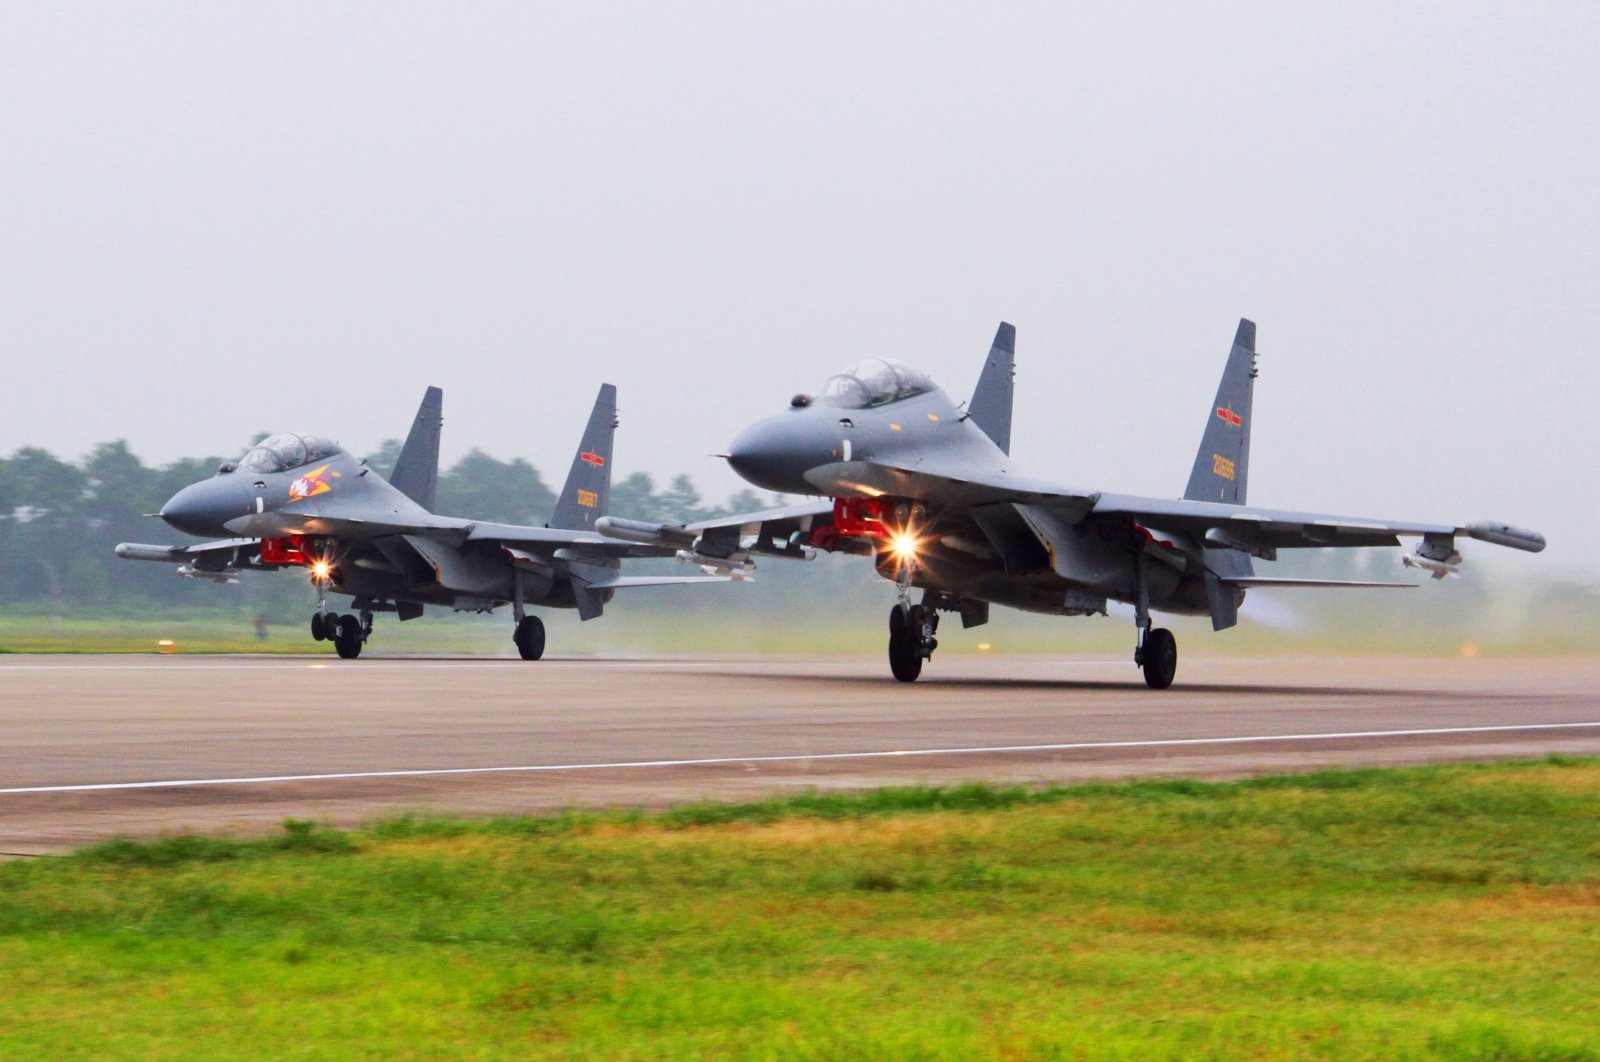 In this undated file photo released by China's Xinhua News Agency, two Chinese SU-30 fighter jets take off from an unspecified location to fly a patrol over the South China Sea. (AP Photo)